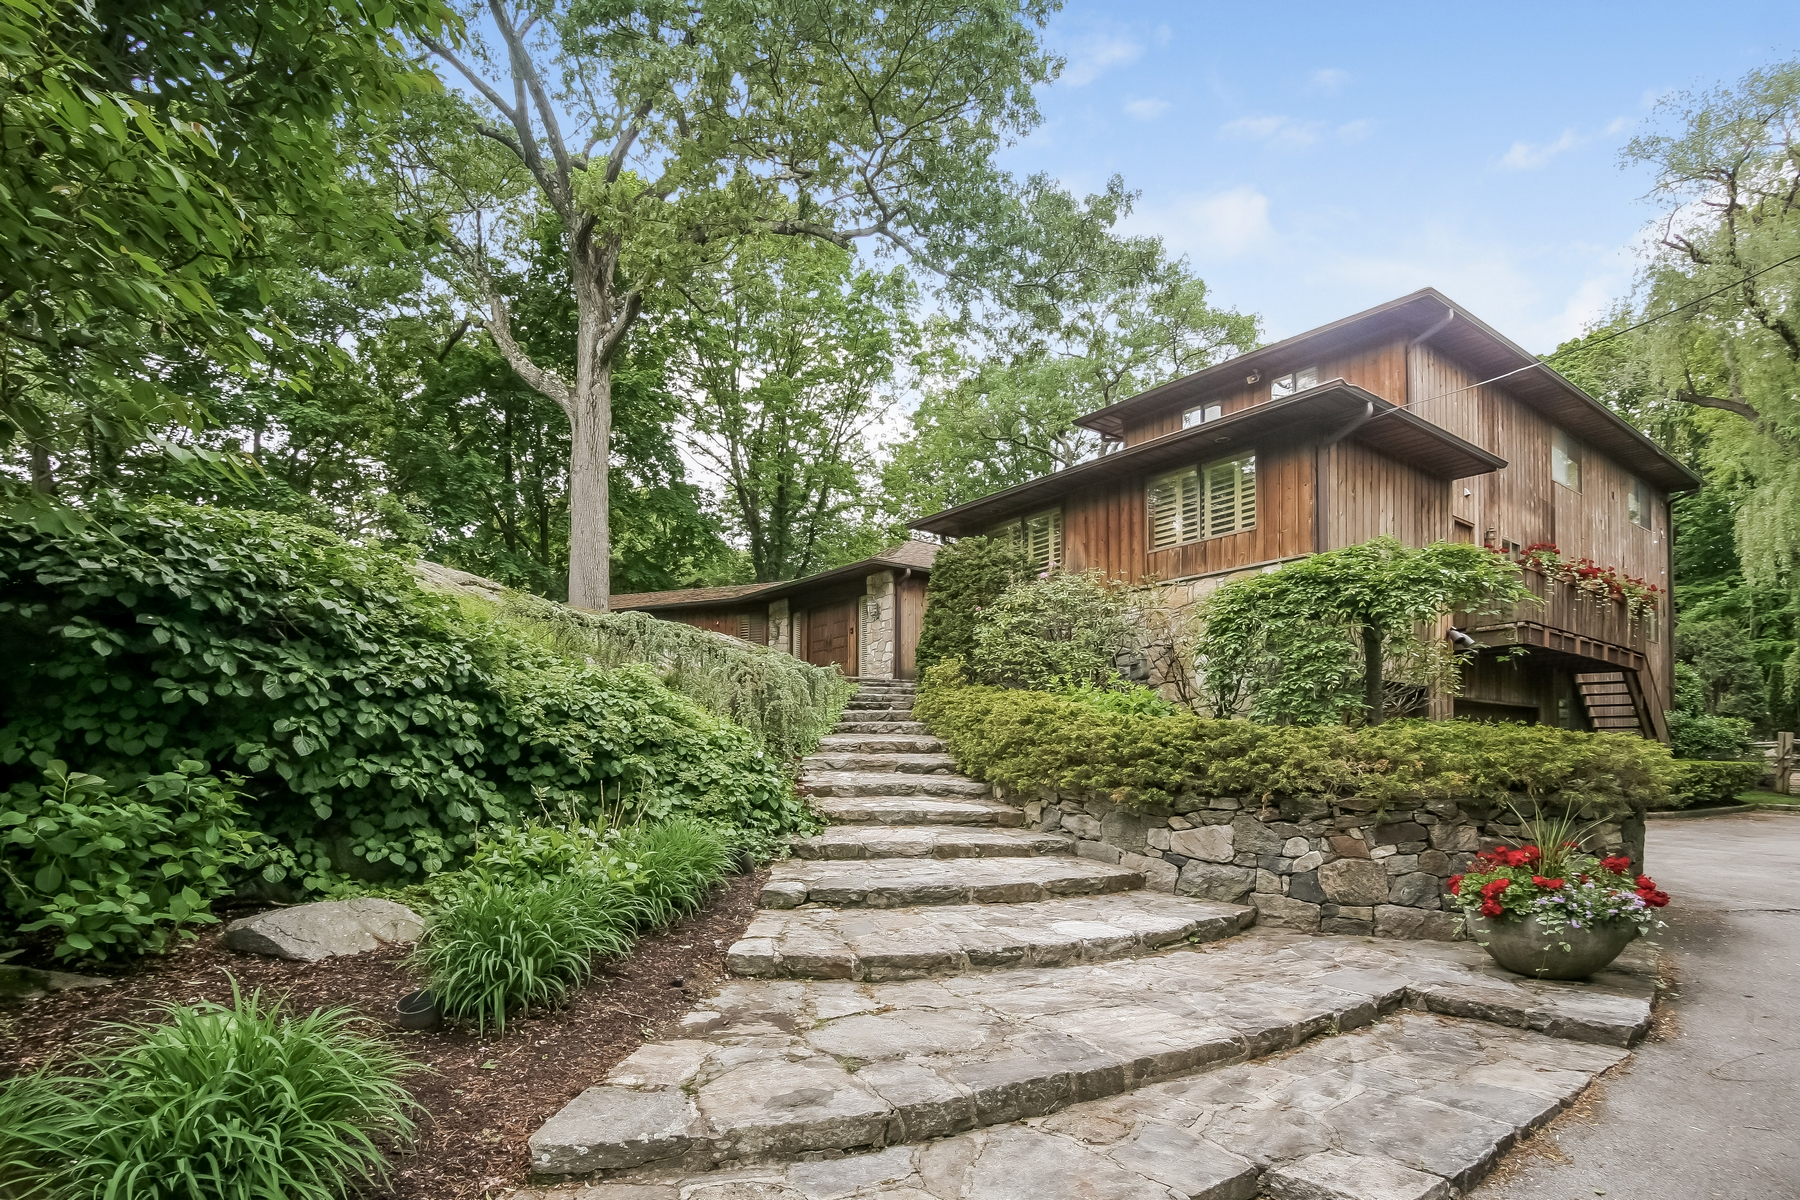 Single Family Home for Sale at Dramatic and Inspiring! 88 Osborn Road Harrison, New York 10528 United States